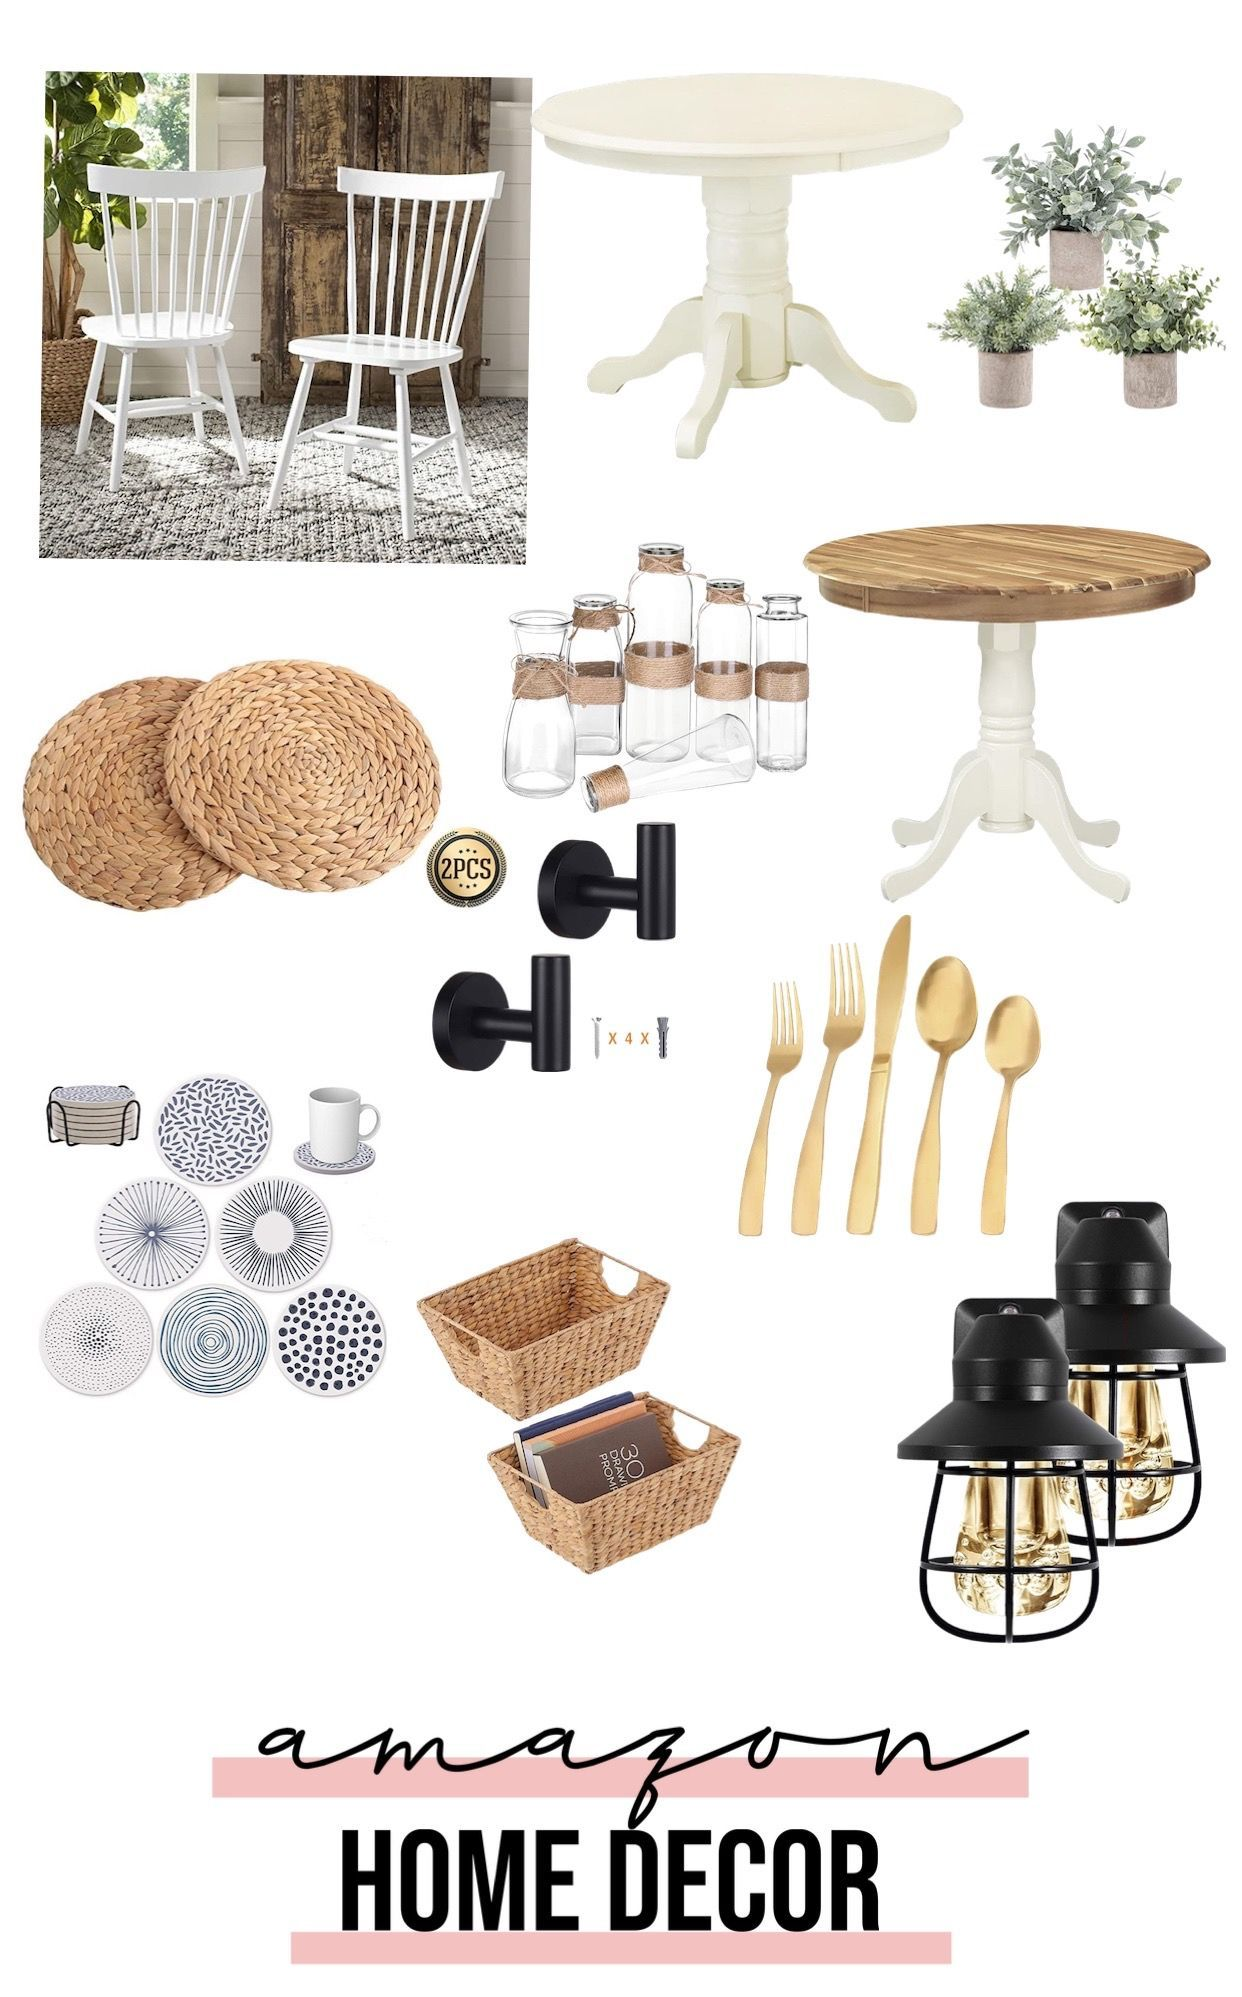 The Best Home Decor Items On Amazon In 2020 Decor Home Decor Home Goods,Pinterest Home Decorations